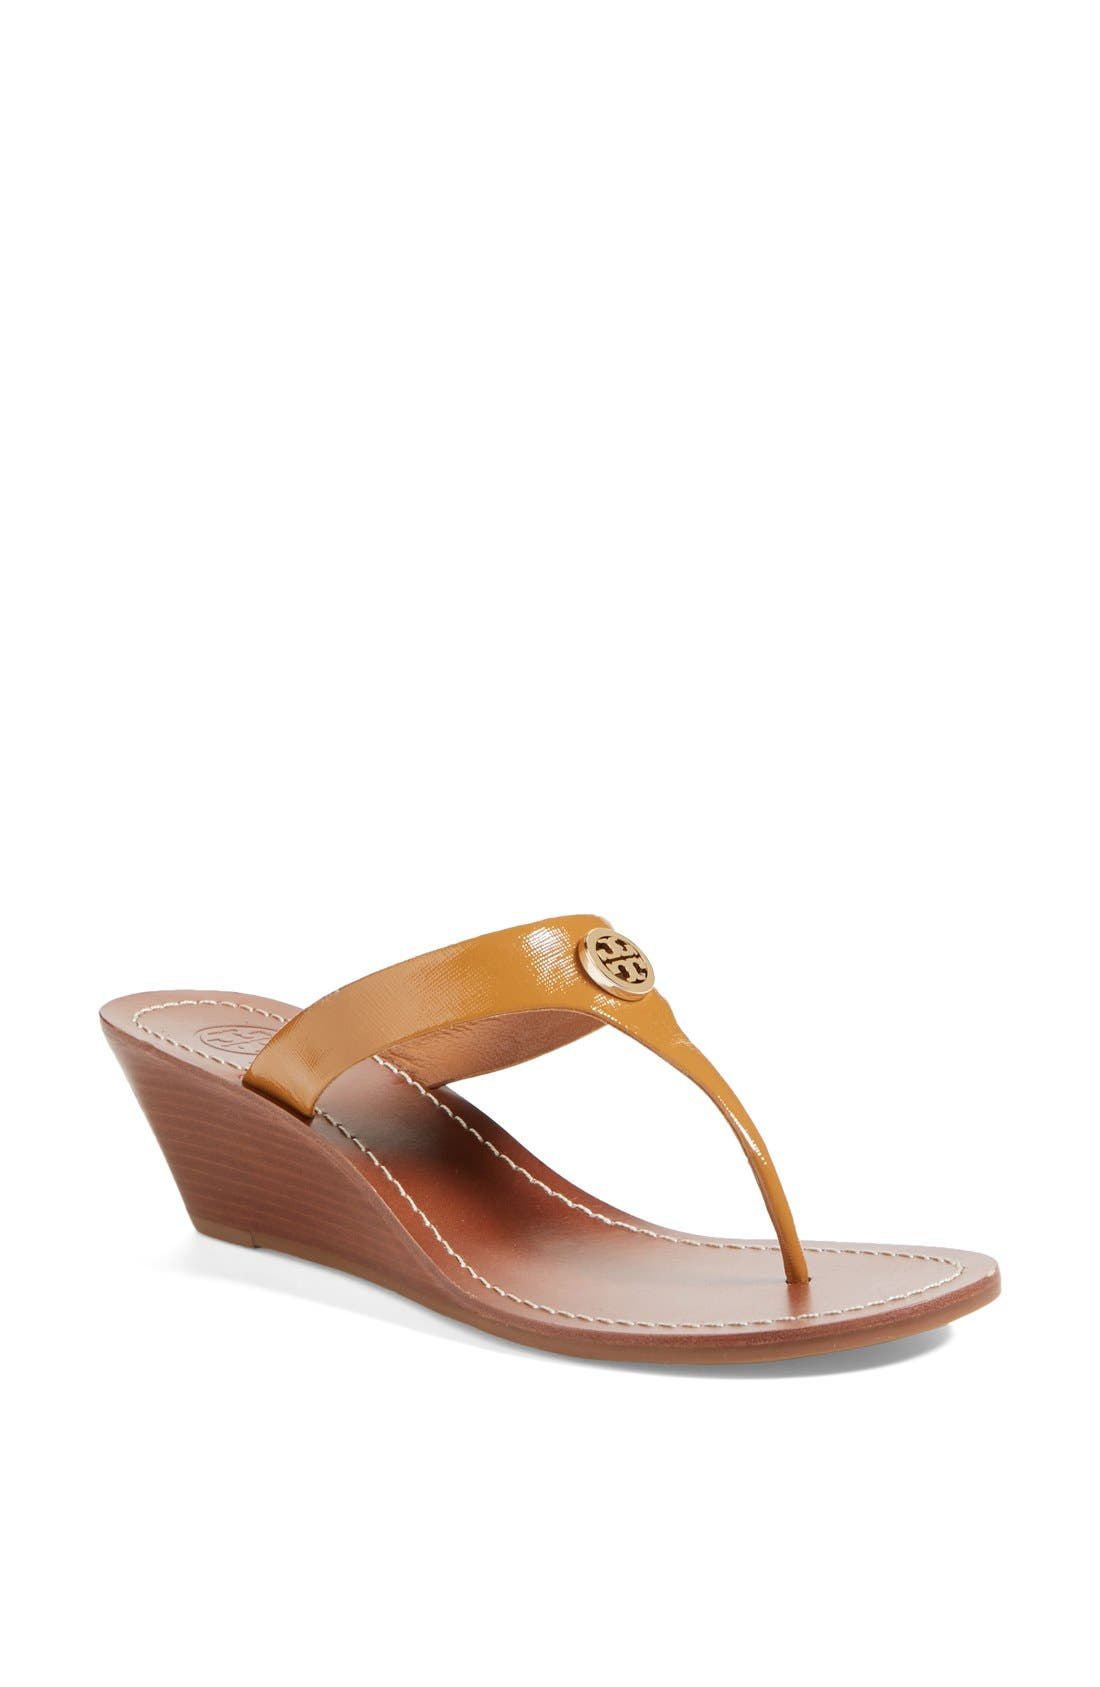 Main Image - Tory Burch 'Cameron' Wedge Sandal (Online Only)